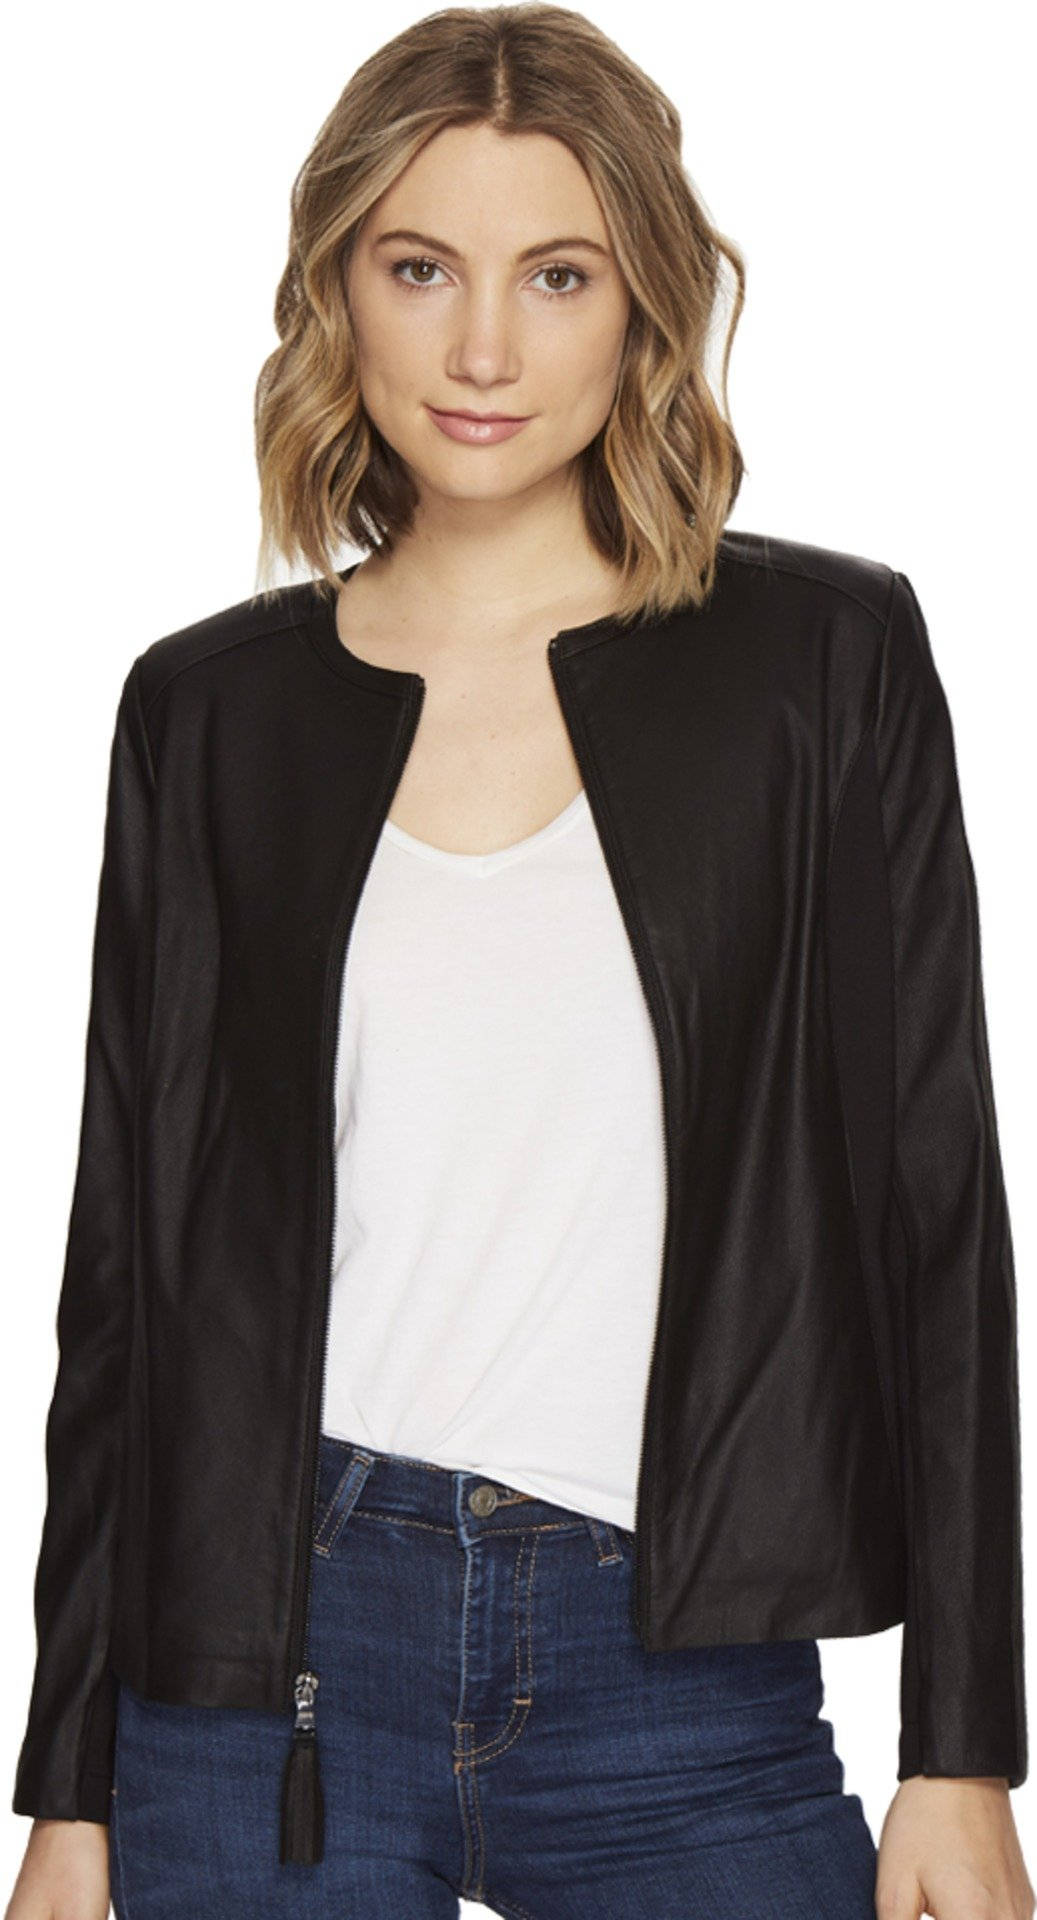 Via Spiga Women's Zip Collarless Jacket with Knit Trim Black Outerwear